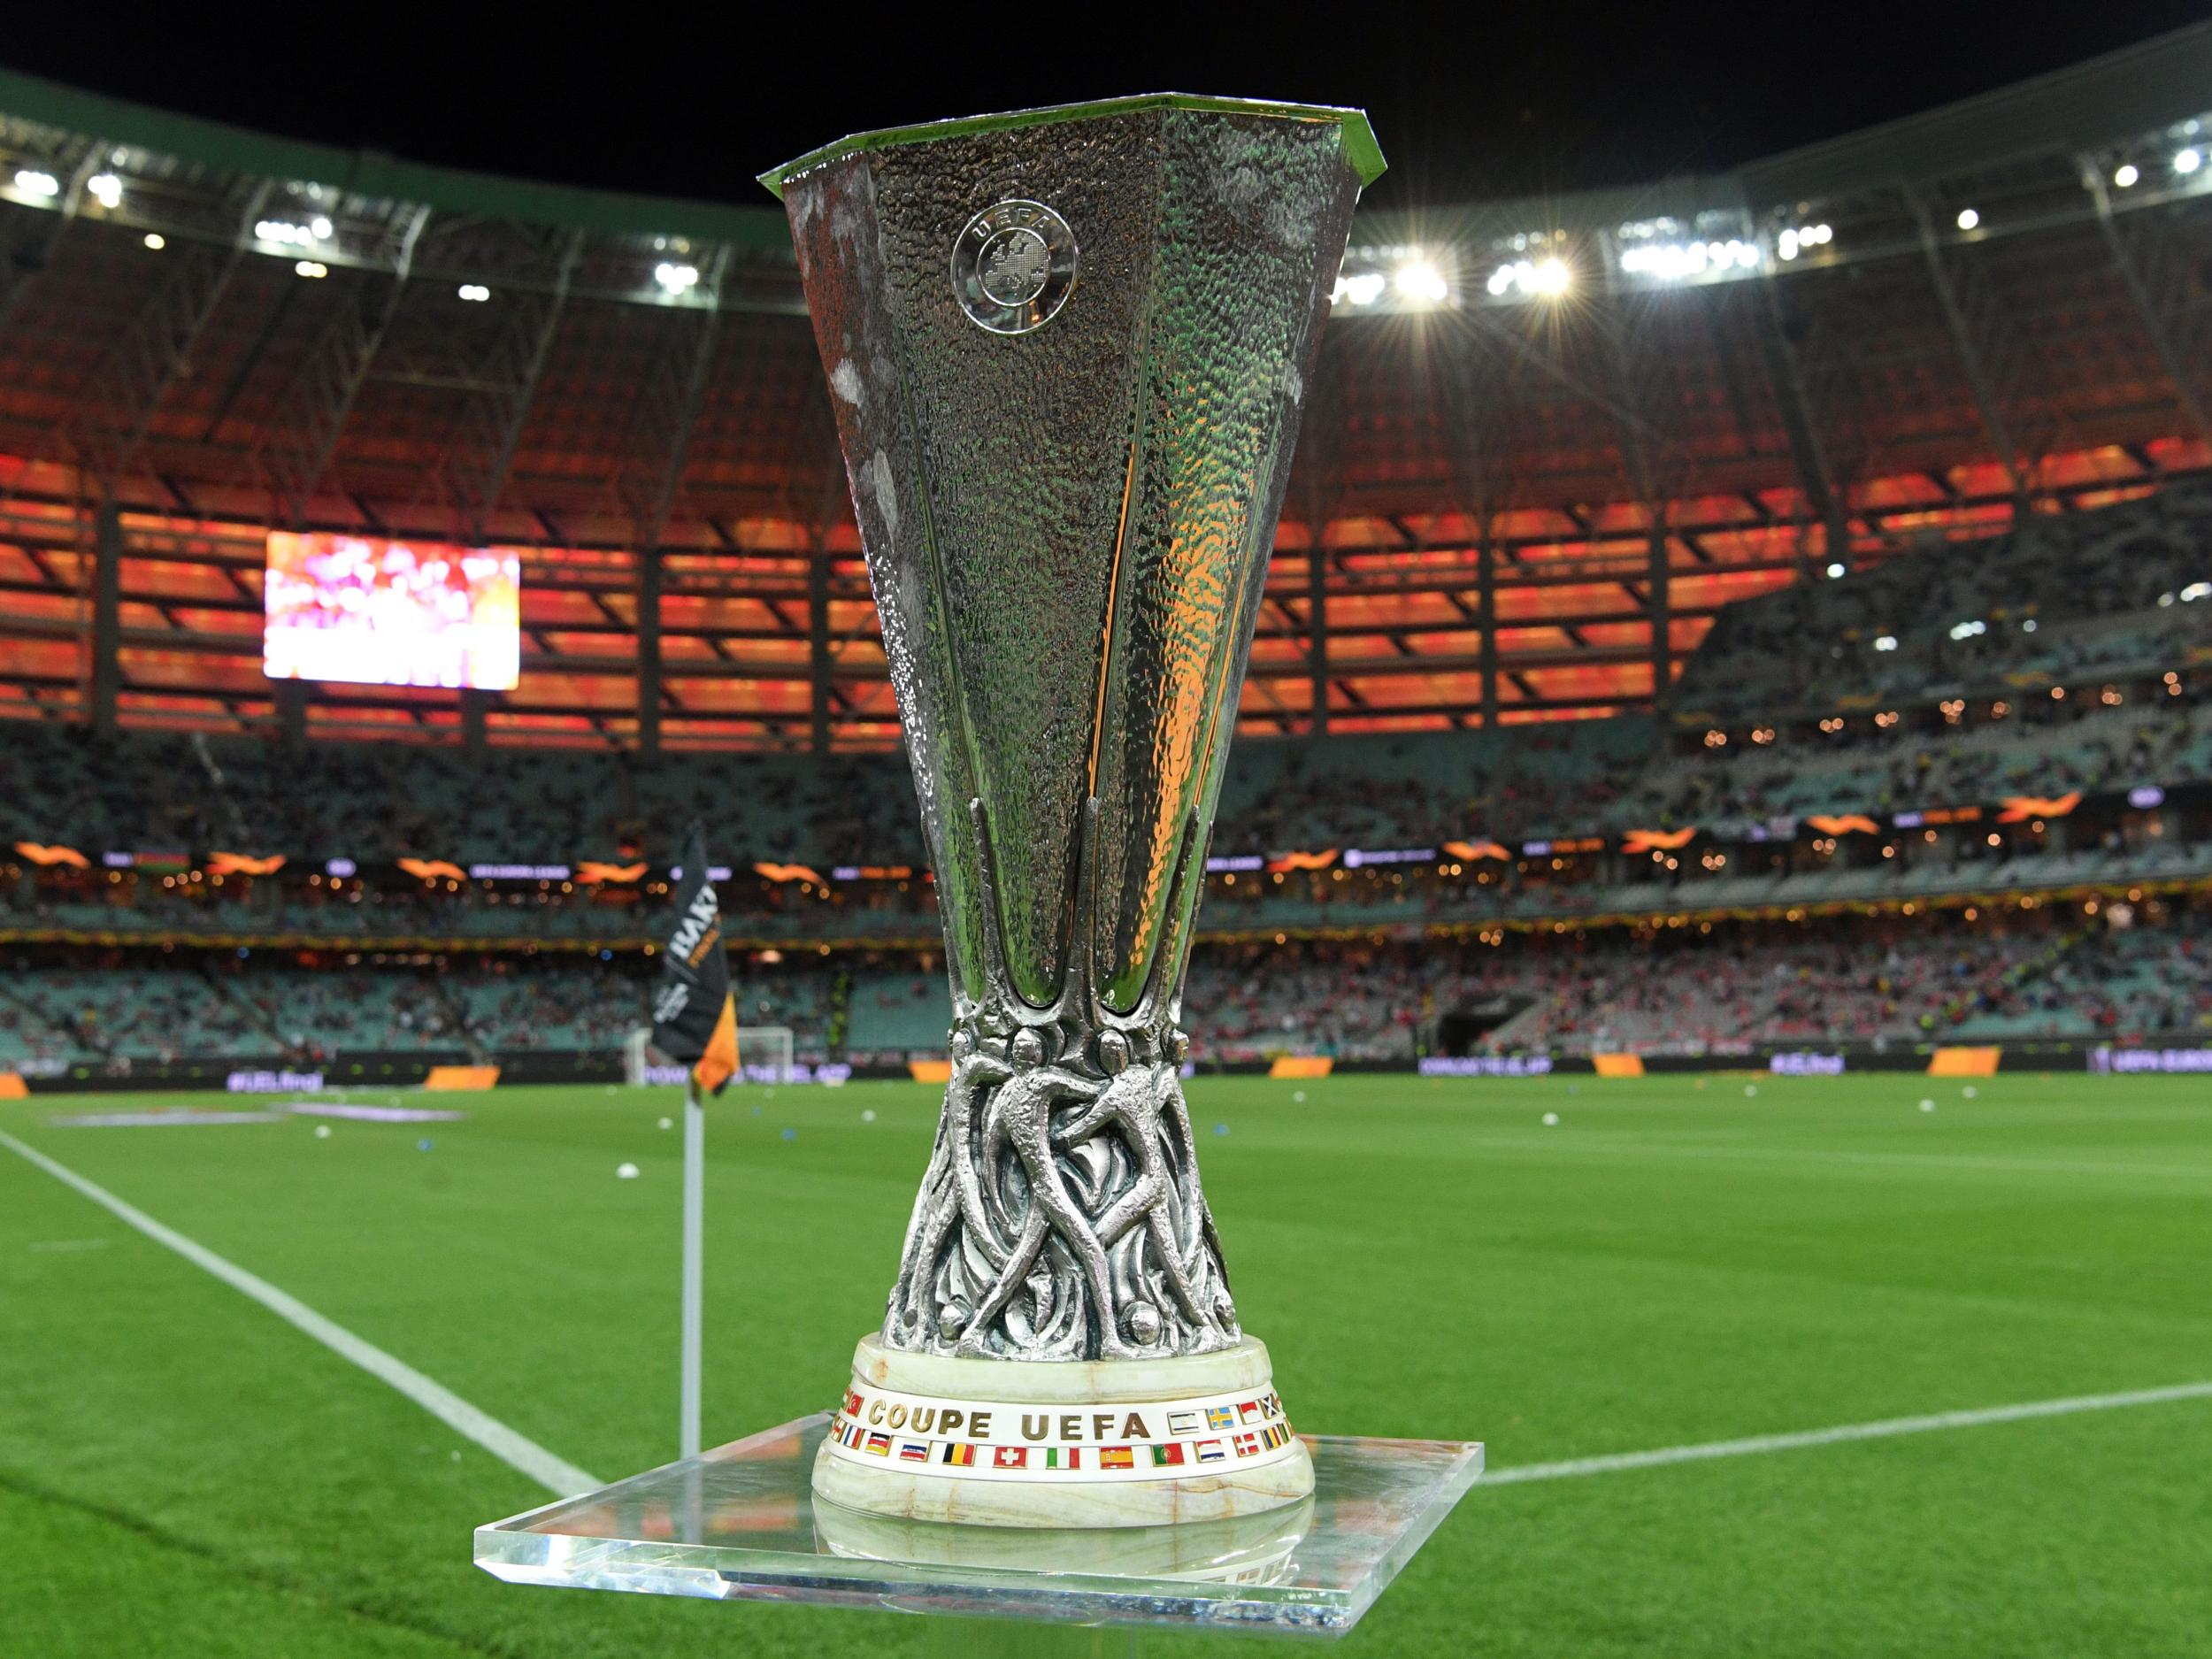 Europa League power rankings: Manchester United, Sevilla, Arsenal – who tops our list of contenders?